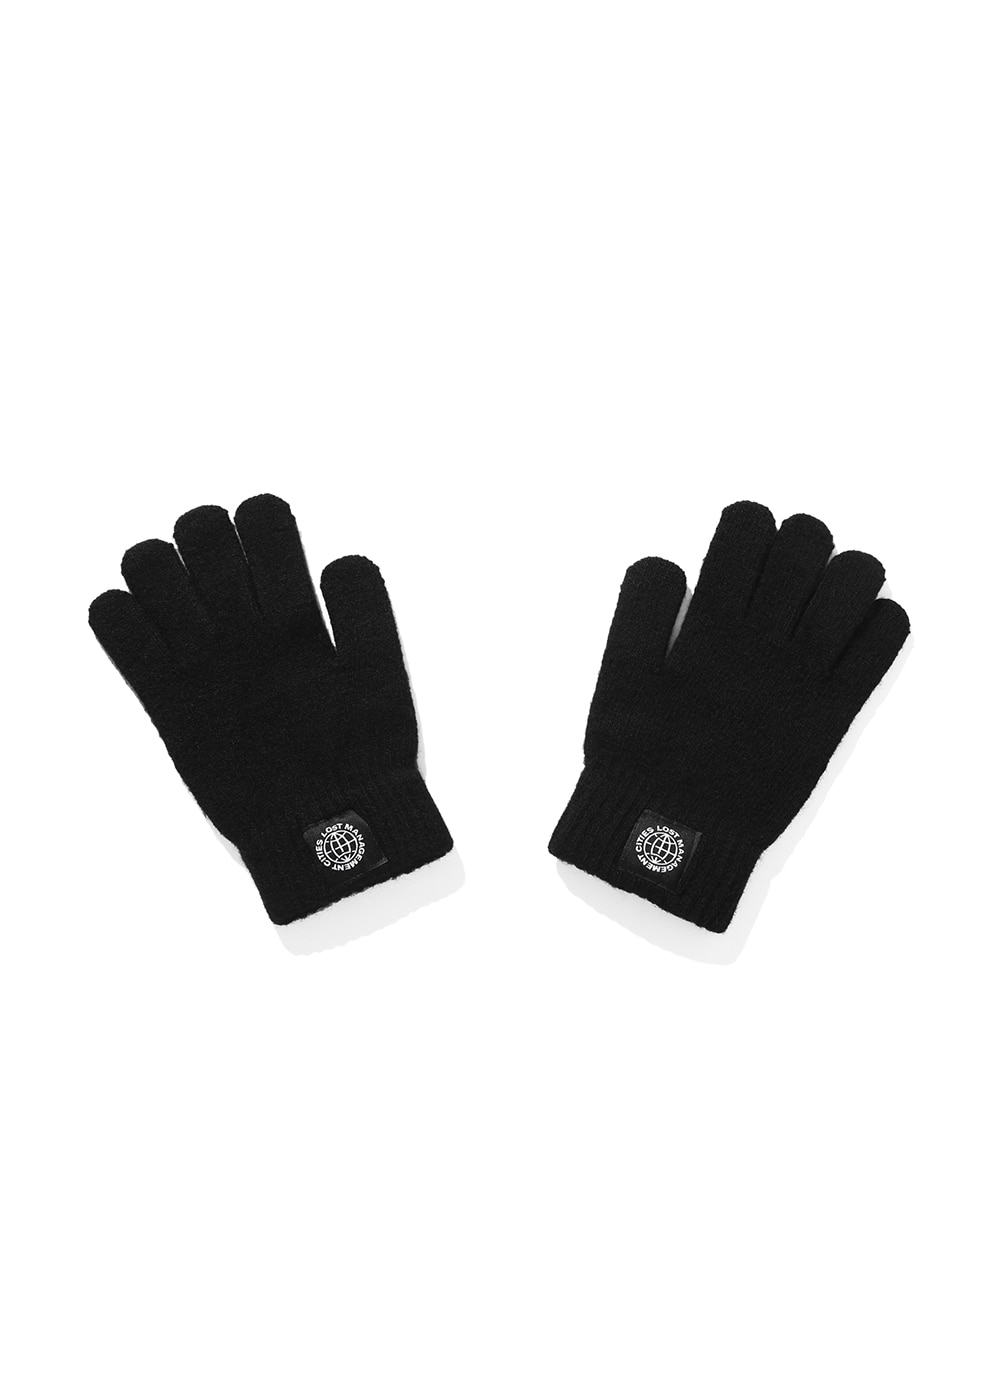 LMC SMART TOUCH KNIT GLOVE black